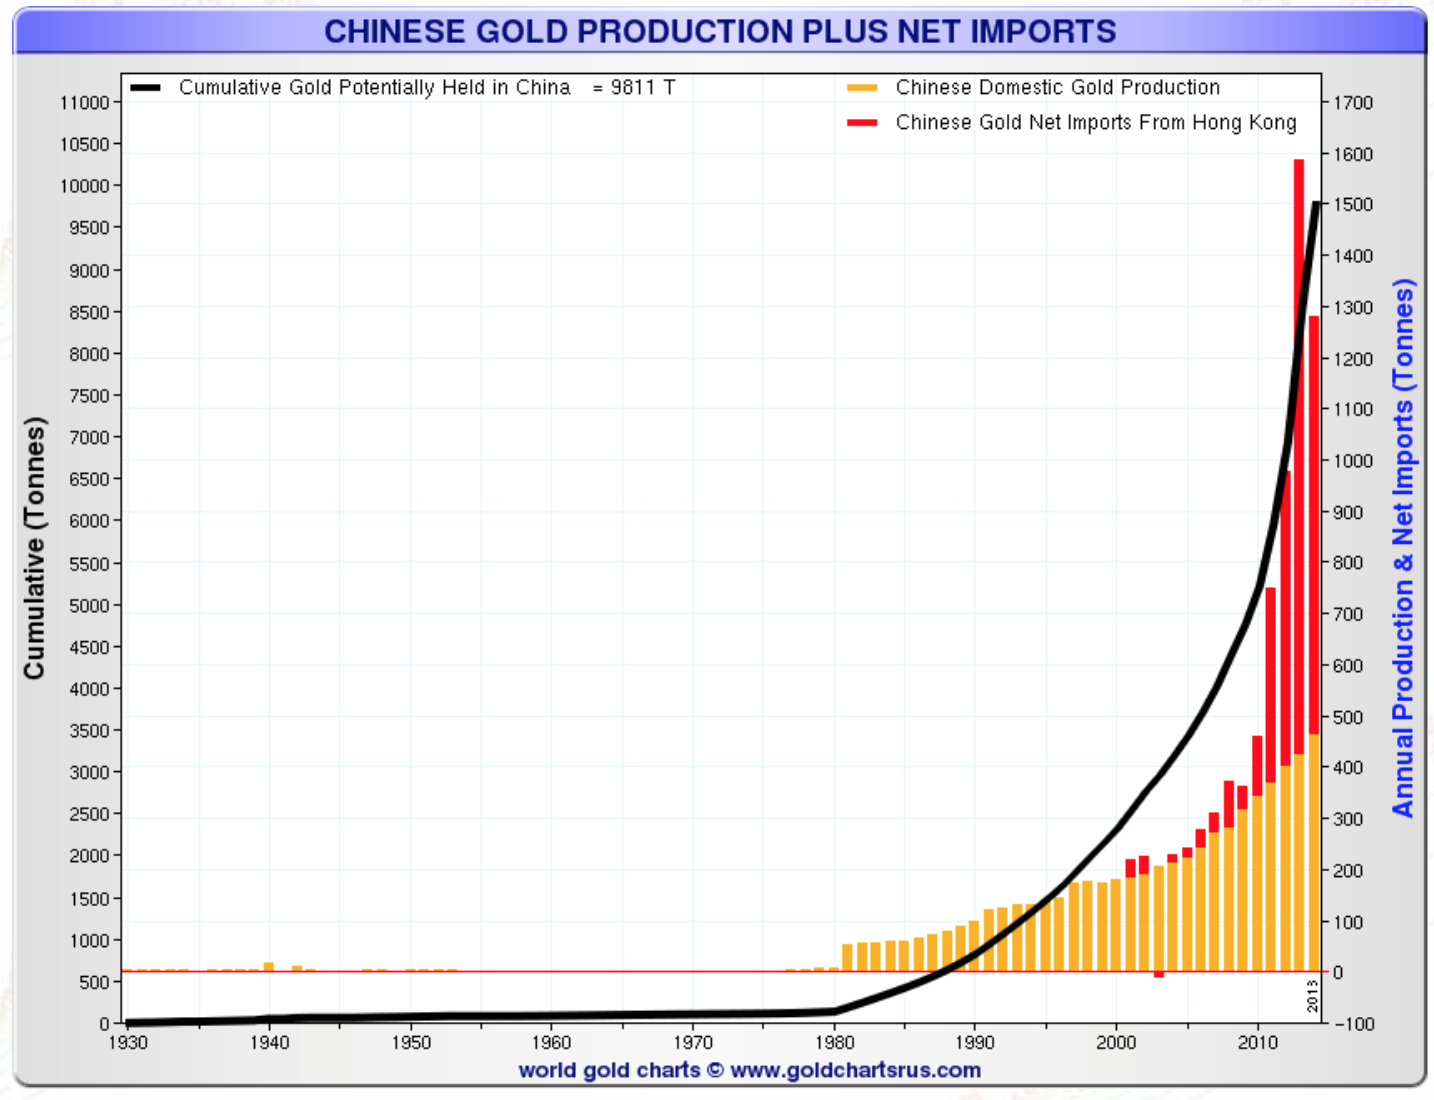 Chinese Gold Production Plus Net Imports